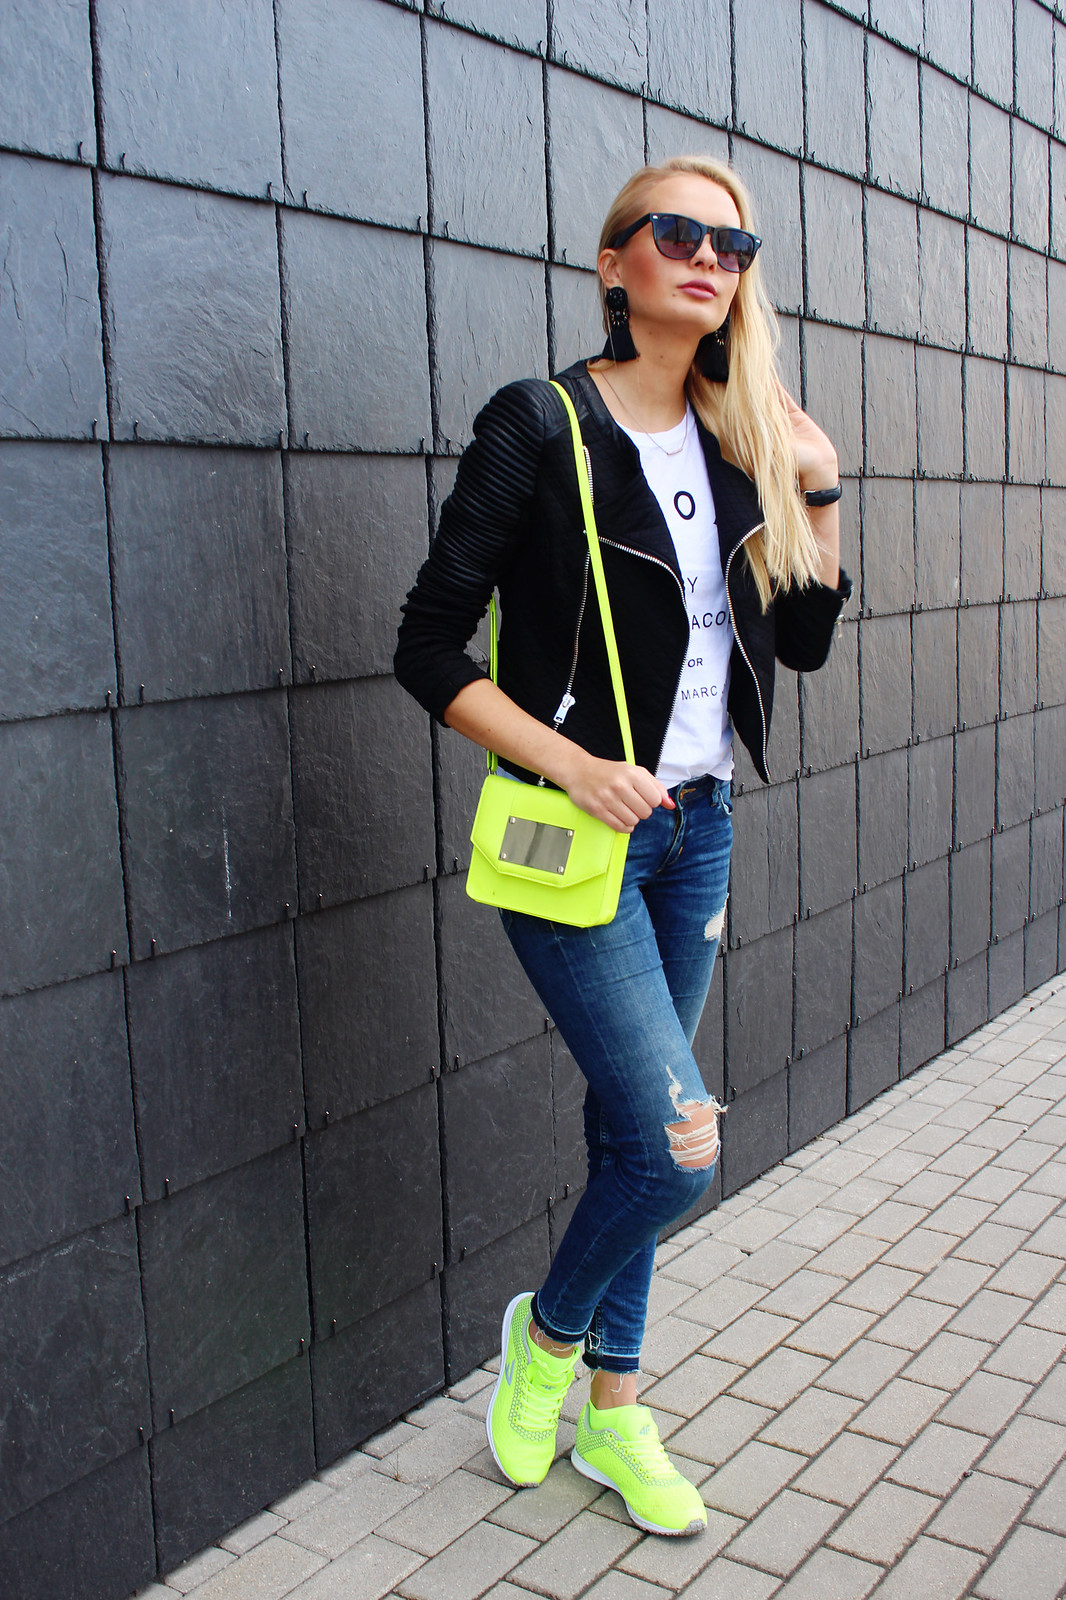 Neon colour accents outfit